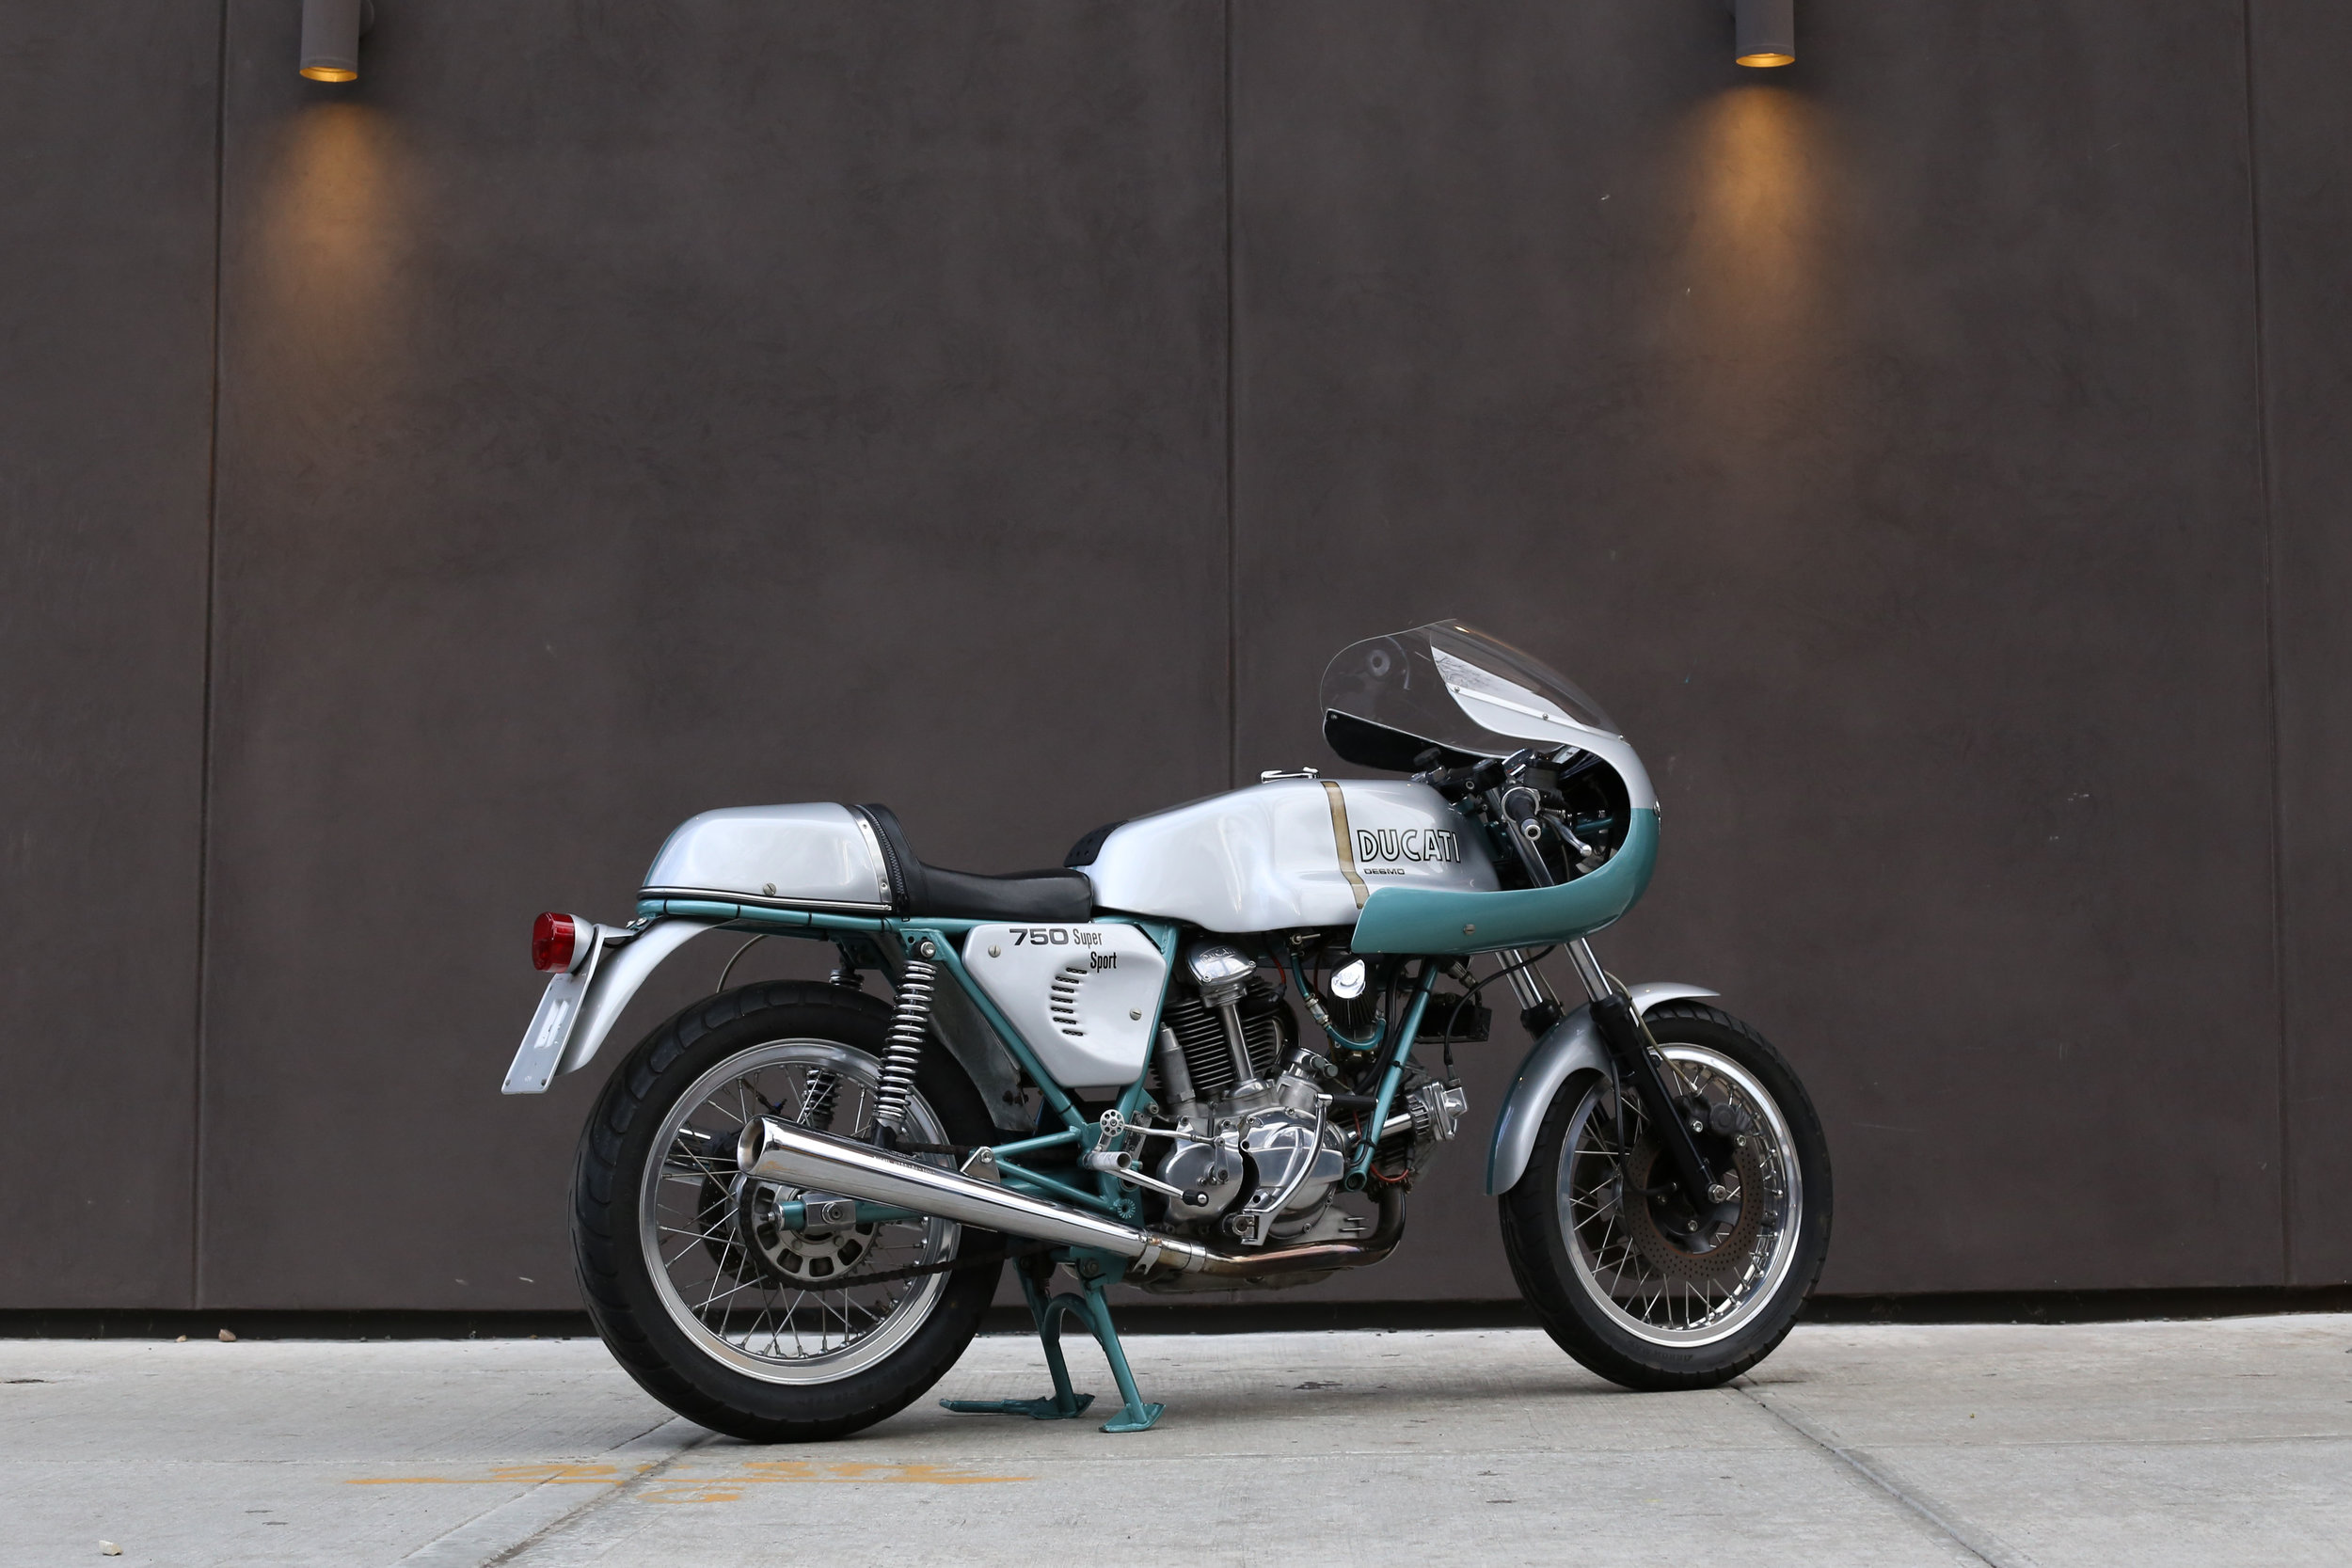 Ducati 750SS 1974 for sale